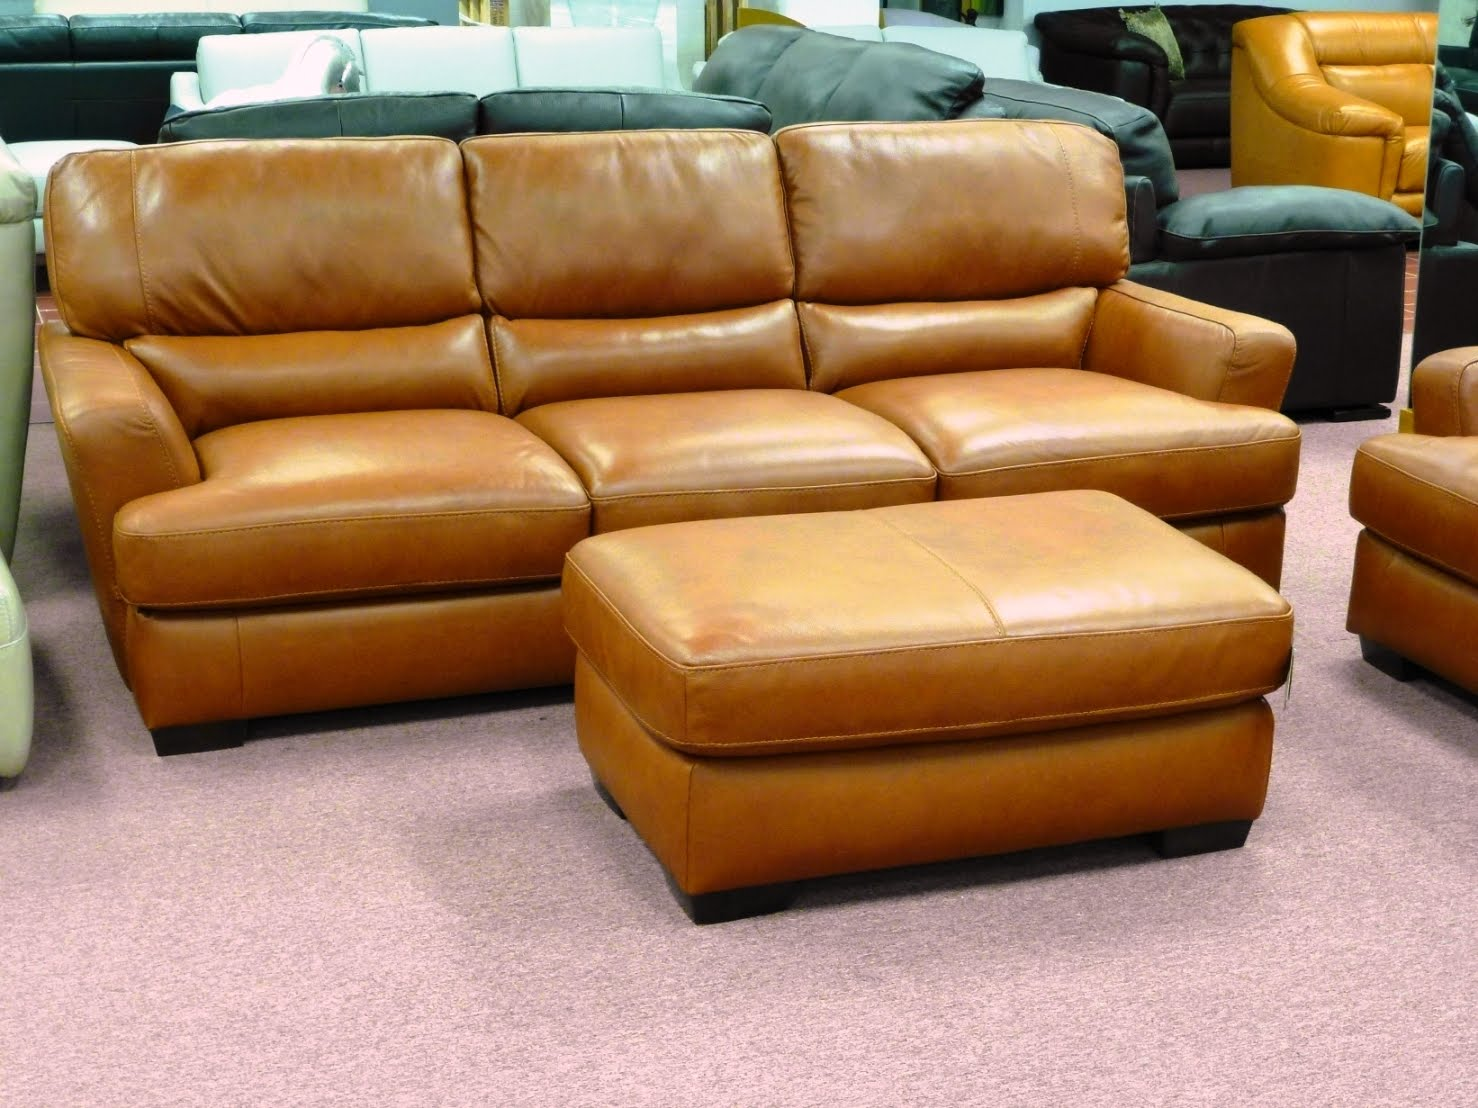 Tresa C019 Leather Sofa by Natuzzi is Fully Customizable ... |Natuzzi Editions Leather Sofa